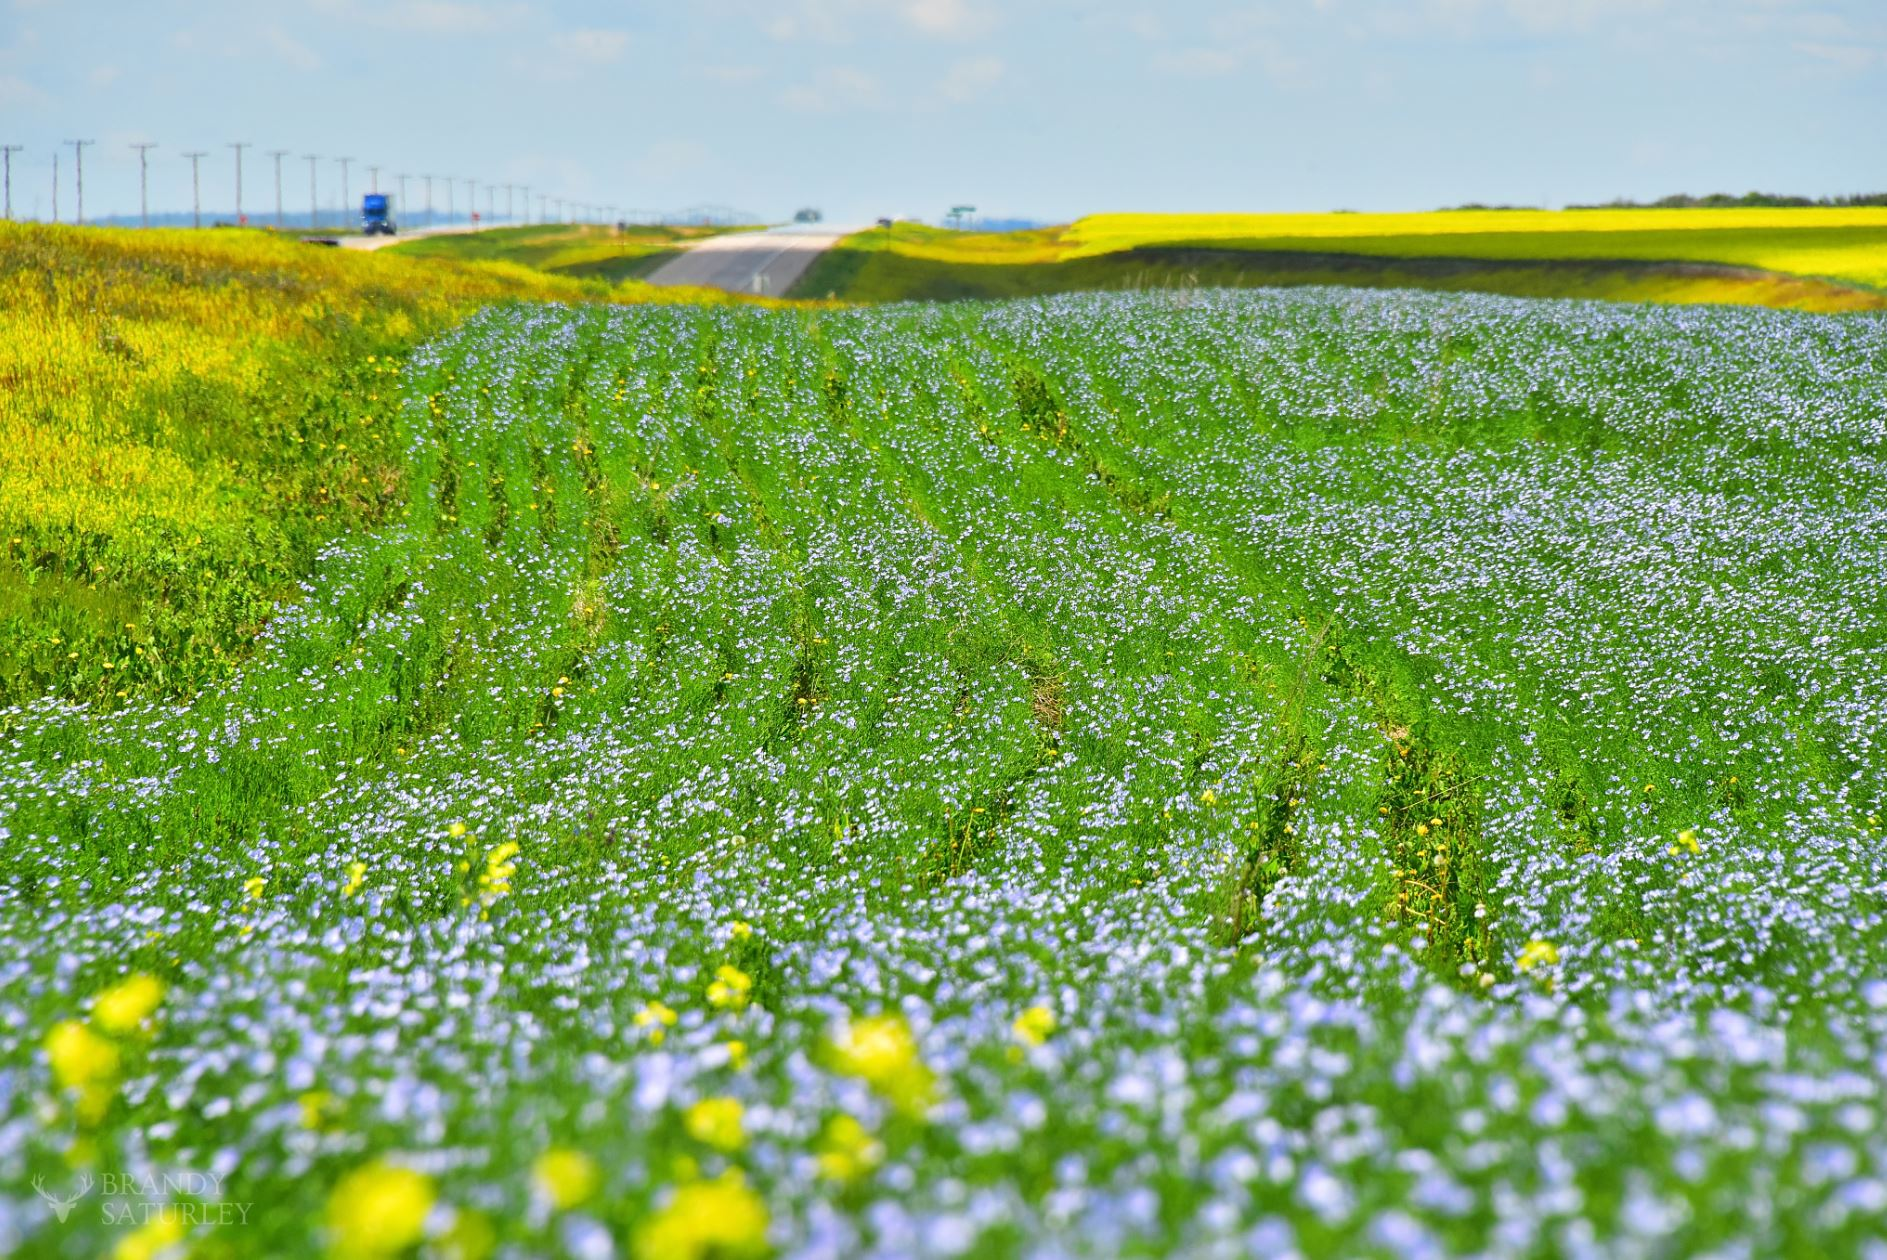 Saskatchewan roadside fields of flax blue and canola yellow